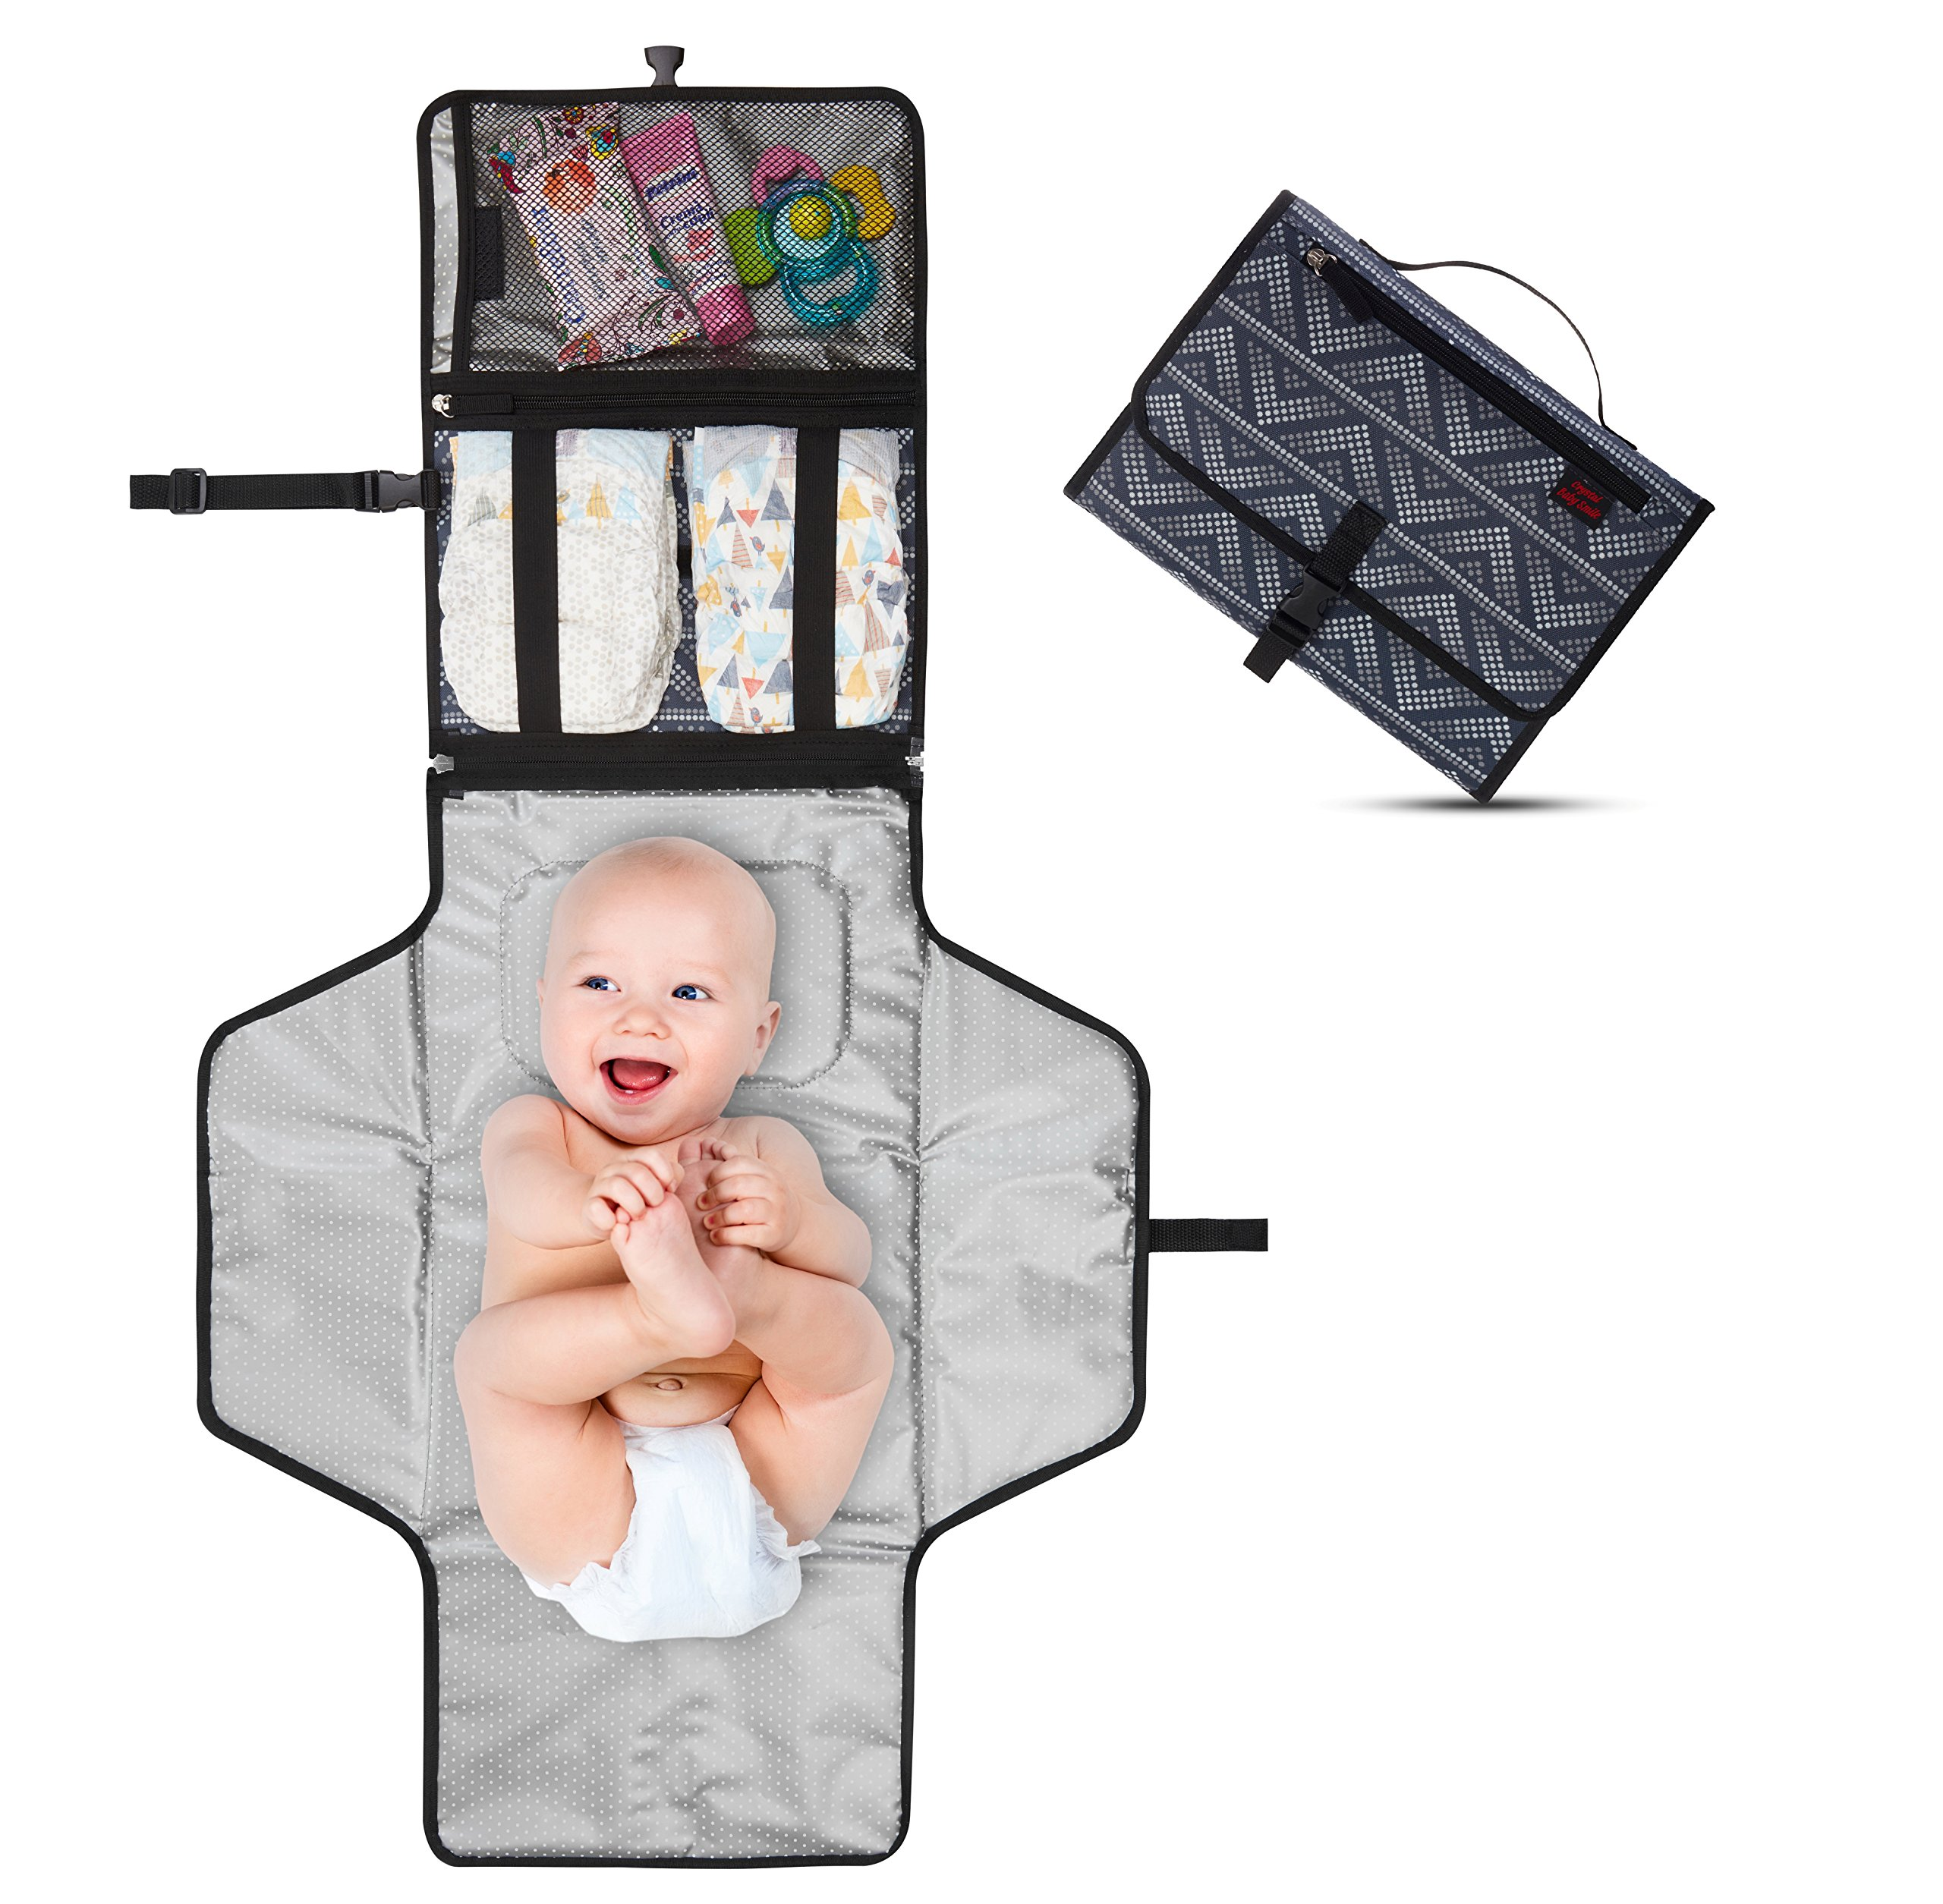 Crystal Baby Smile Portable Changing Pad - Diaper Clutch - Lightweight Travel Station Kit for Baby Diapering - Entirely Padded, Detachable and Wipeable Mat - Mesh and Zippered Pockets - Gray Dots